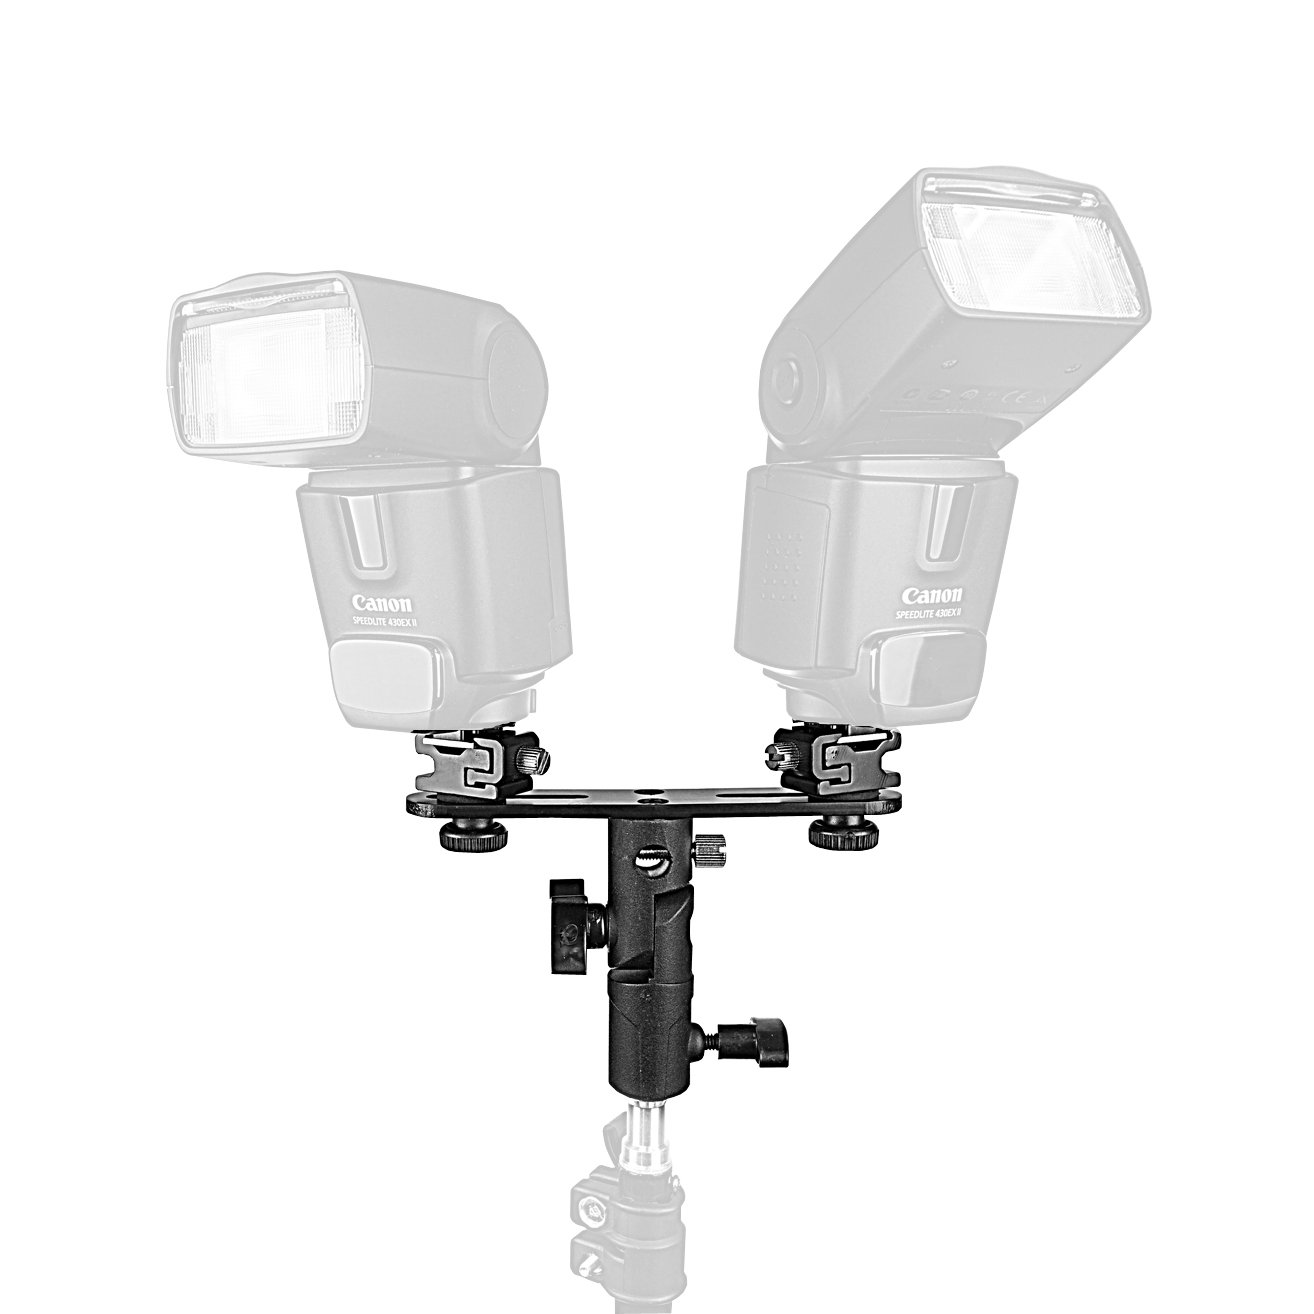 PhotoTrust Double Metal Flash Bracket Swivel Bracket Umbrella Holder Studio Tilting Bracket for Canon, Nikon, Pentax, Olympus, Sony